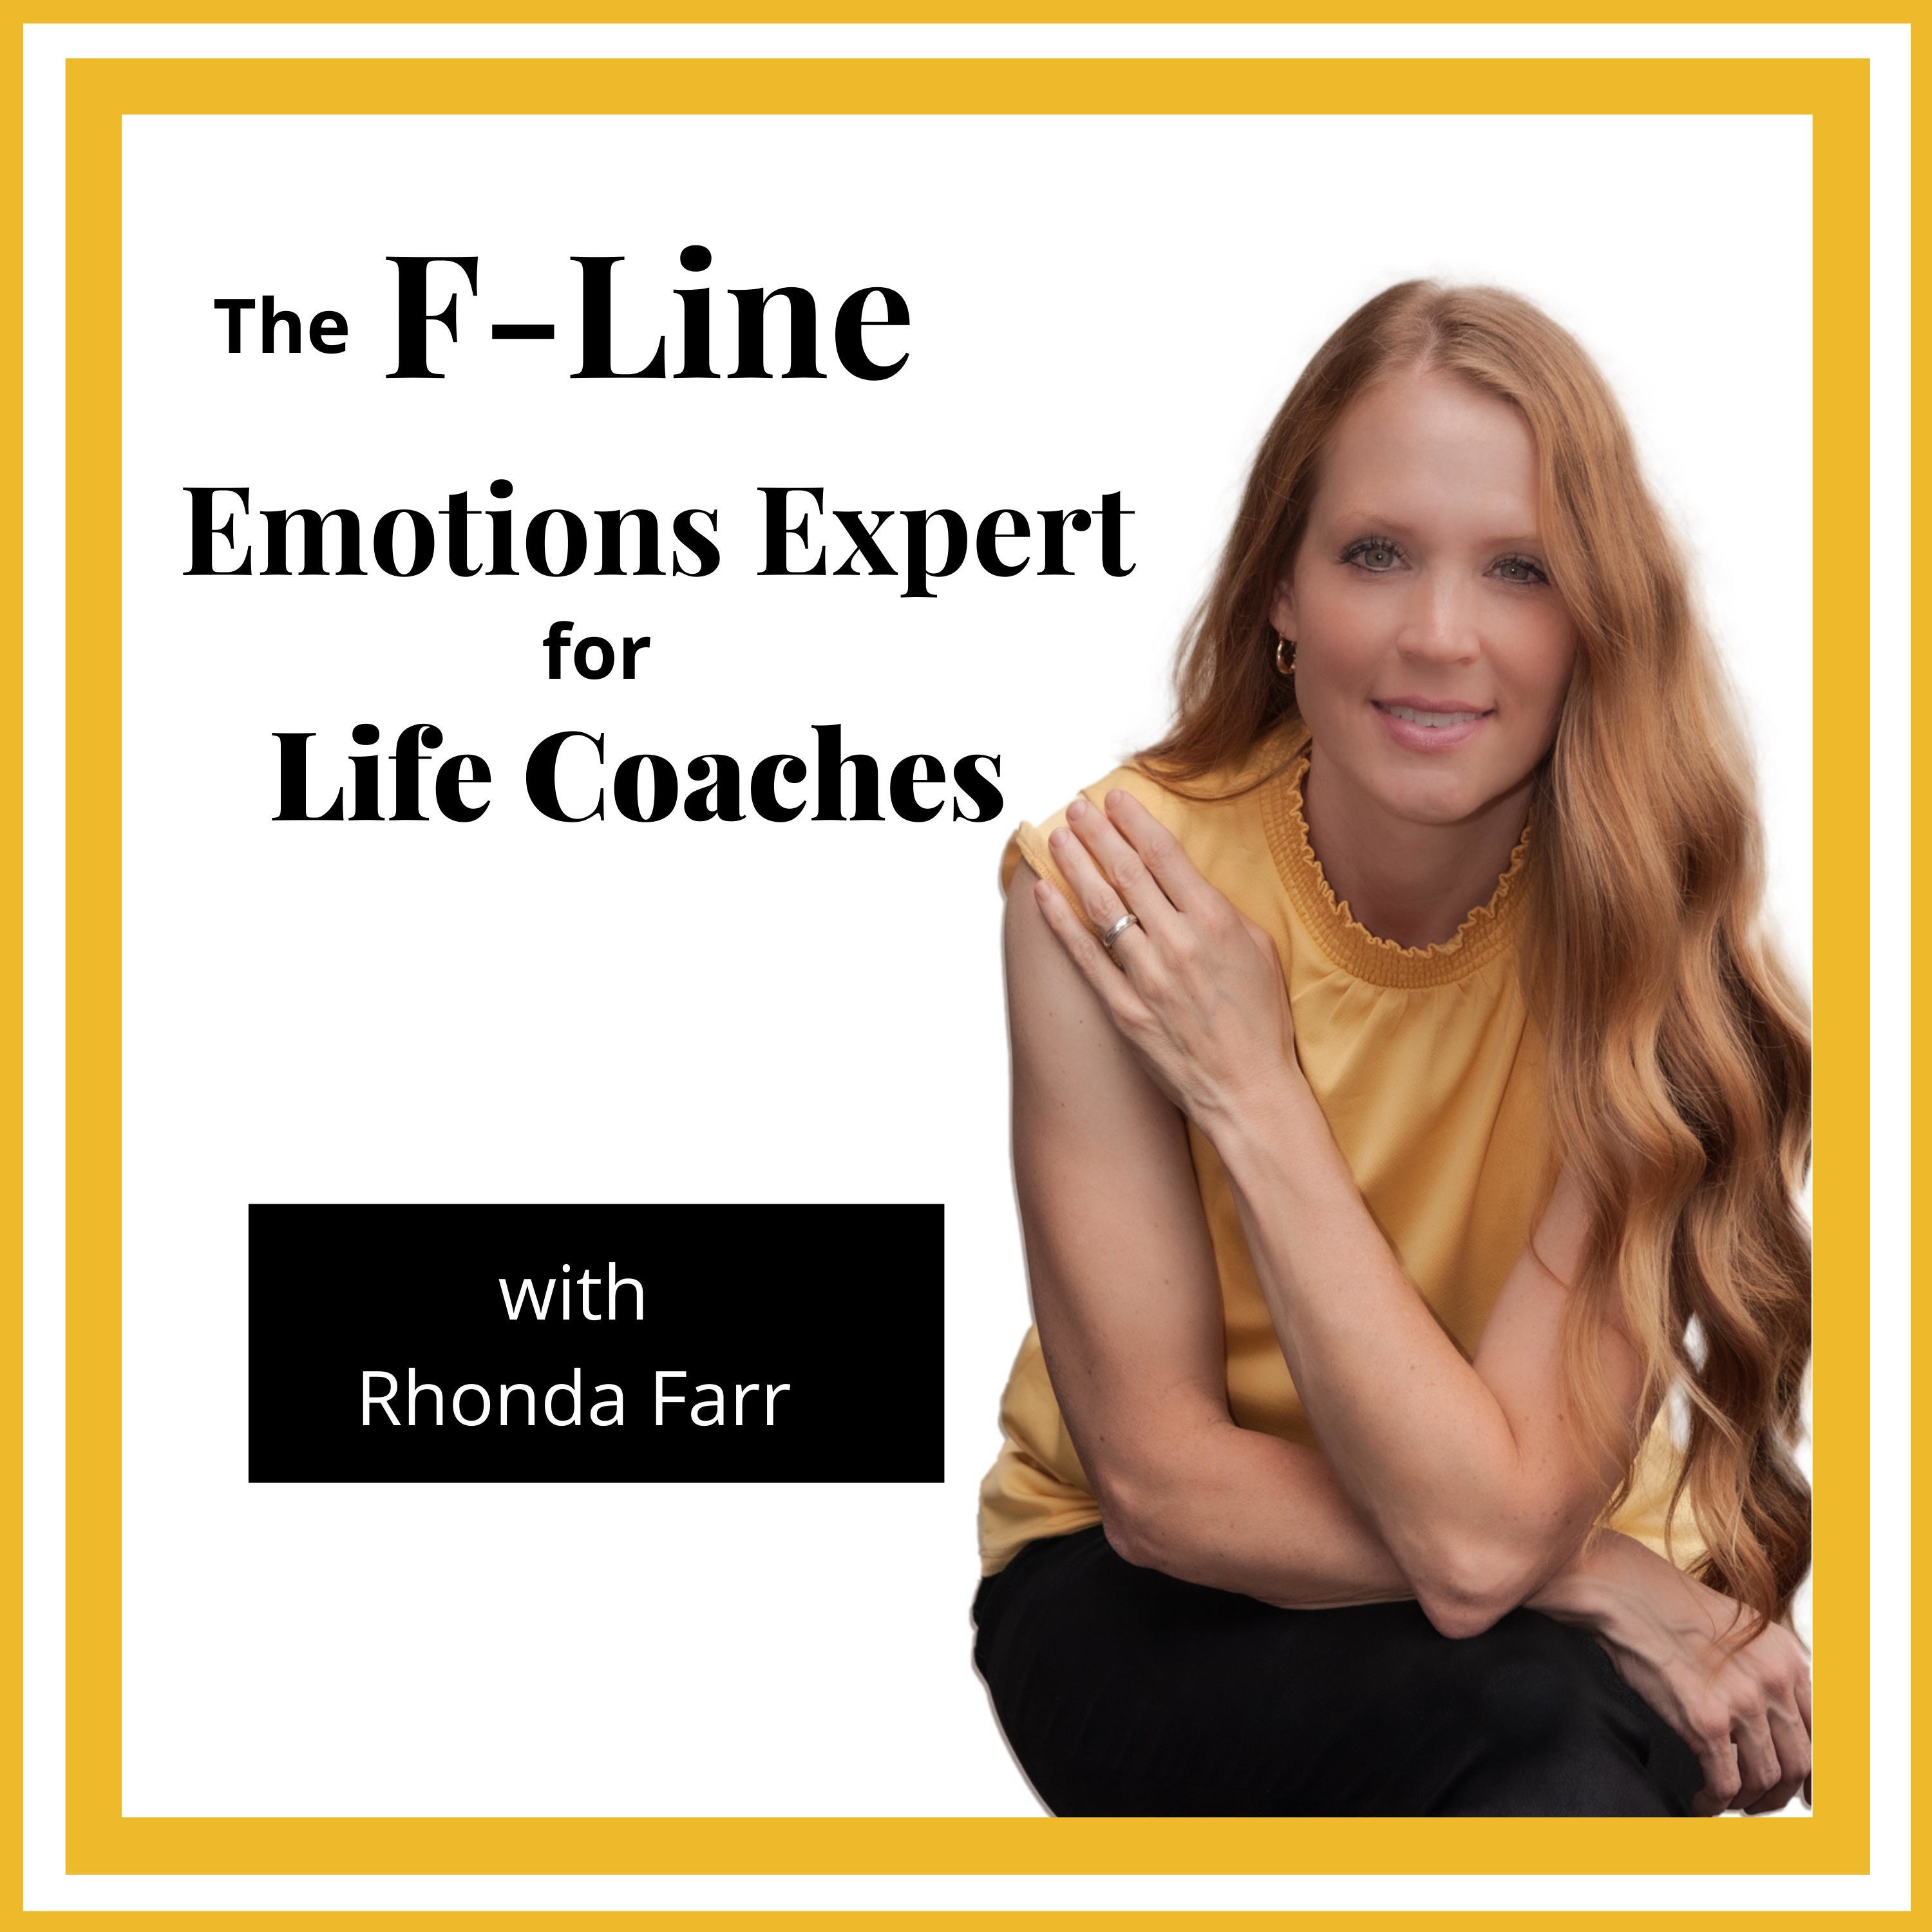 The F-Line, Emotions Expert for Life Coaches